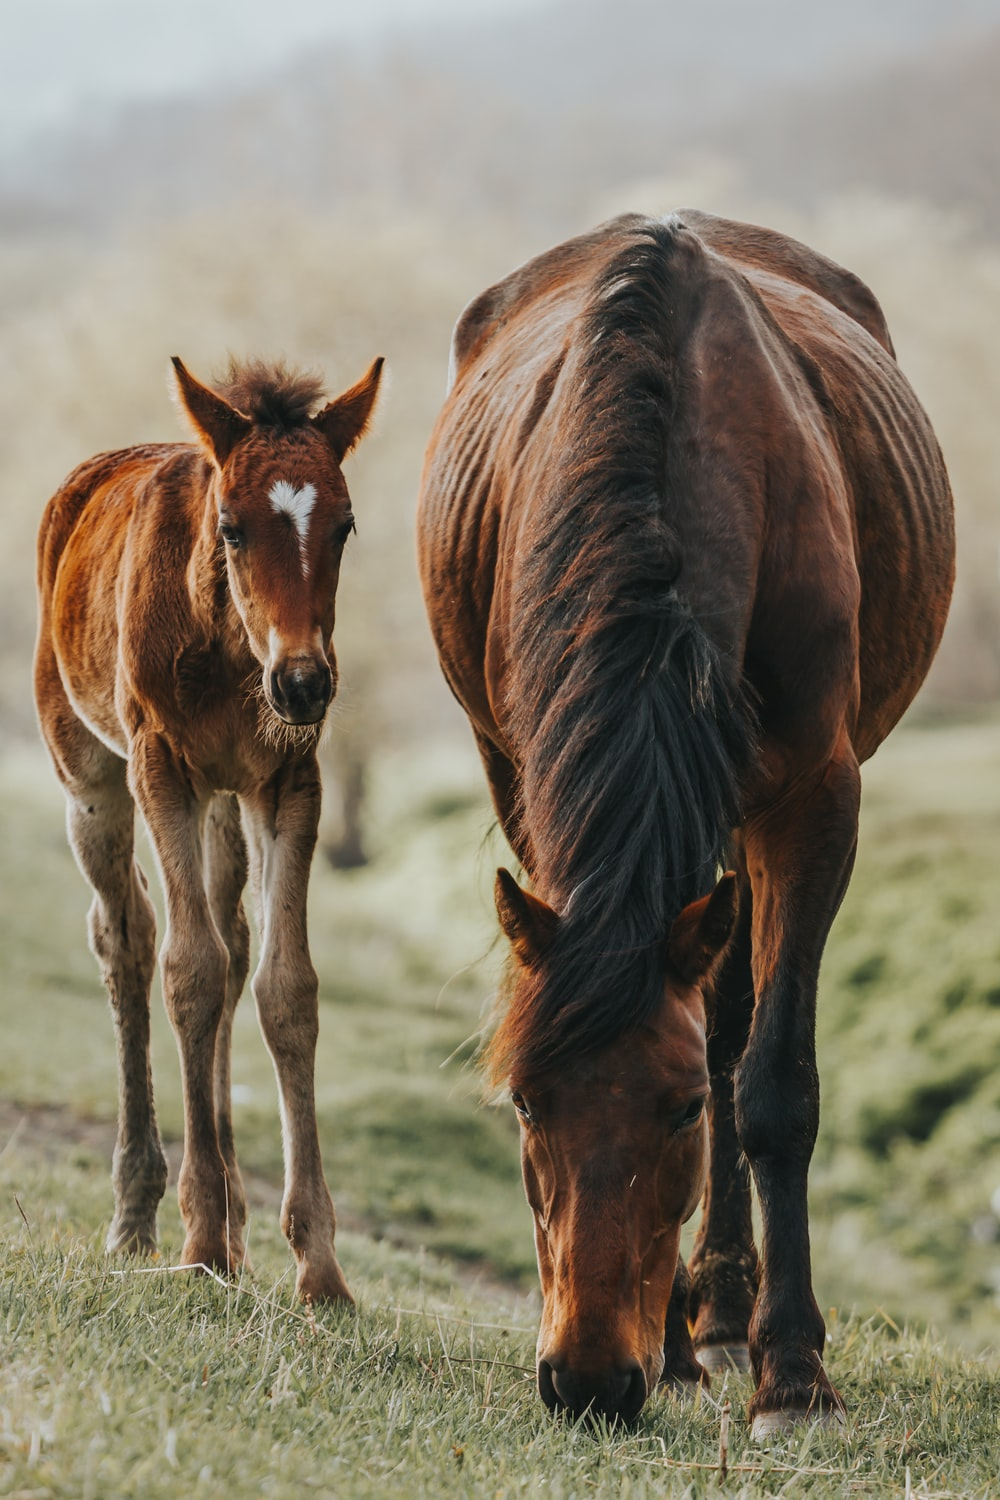 brown horse with cub